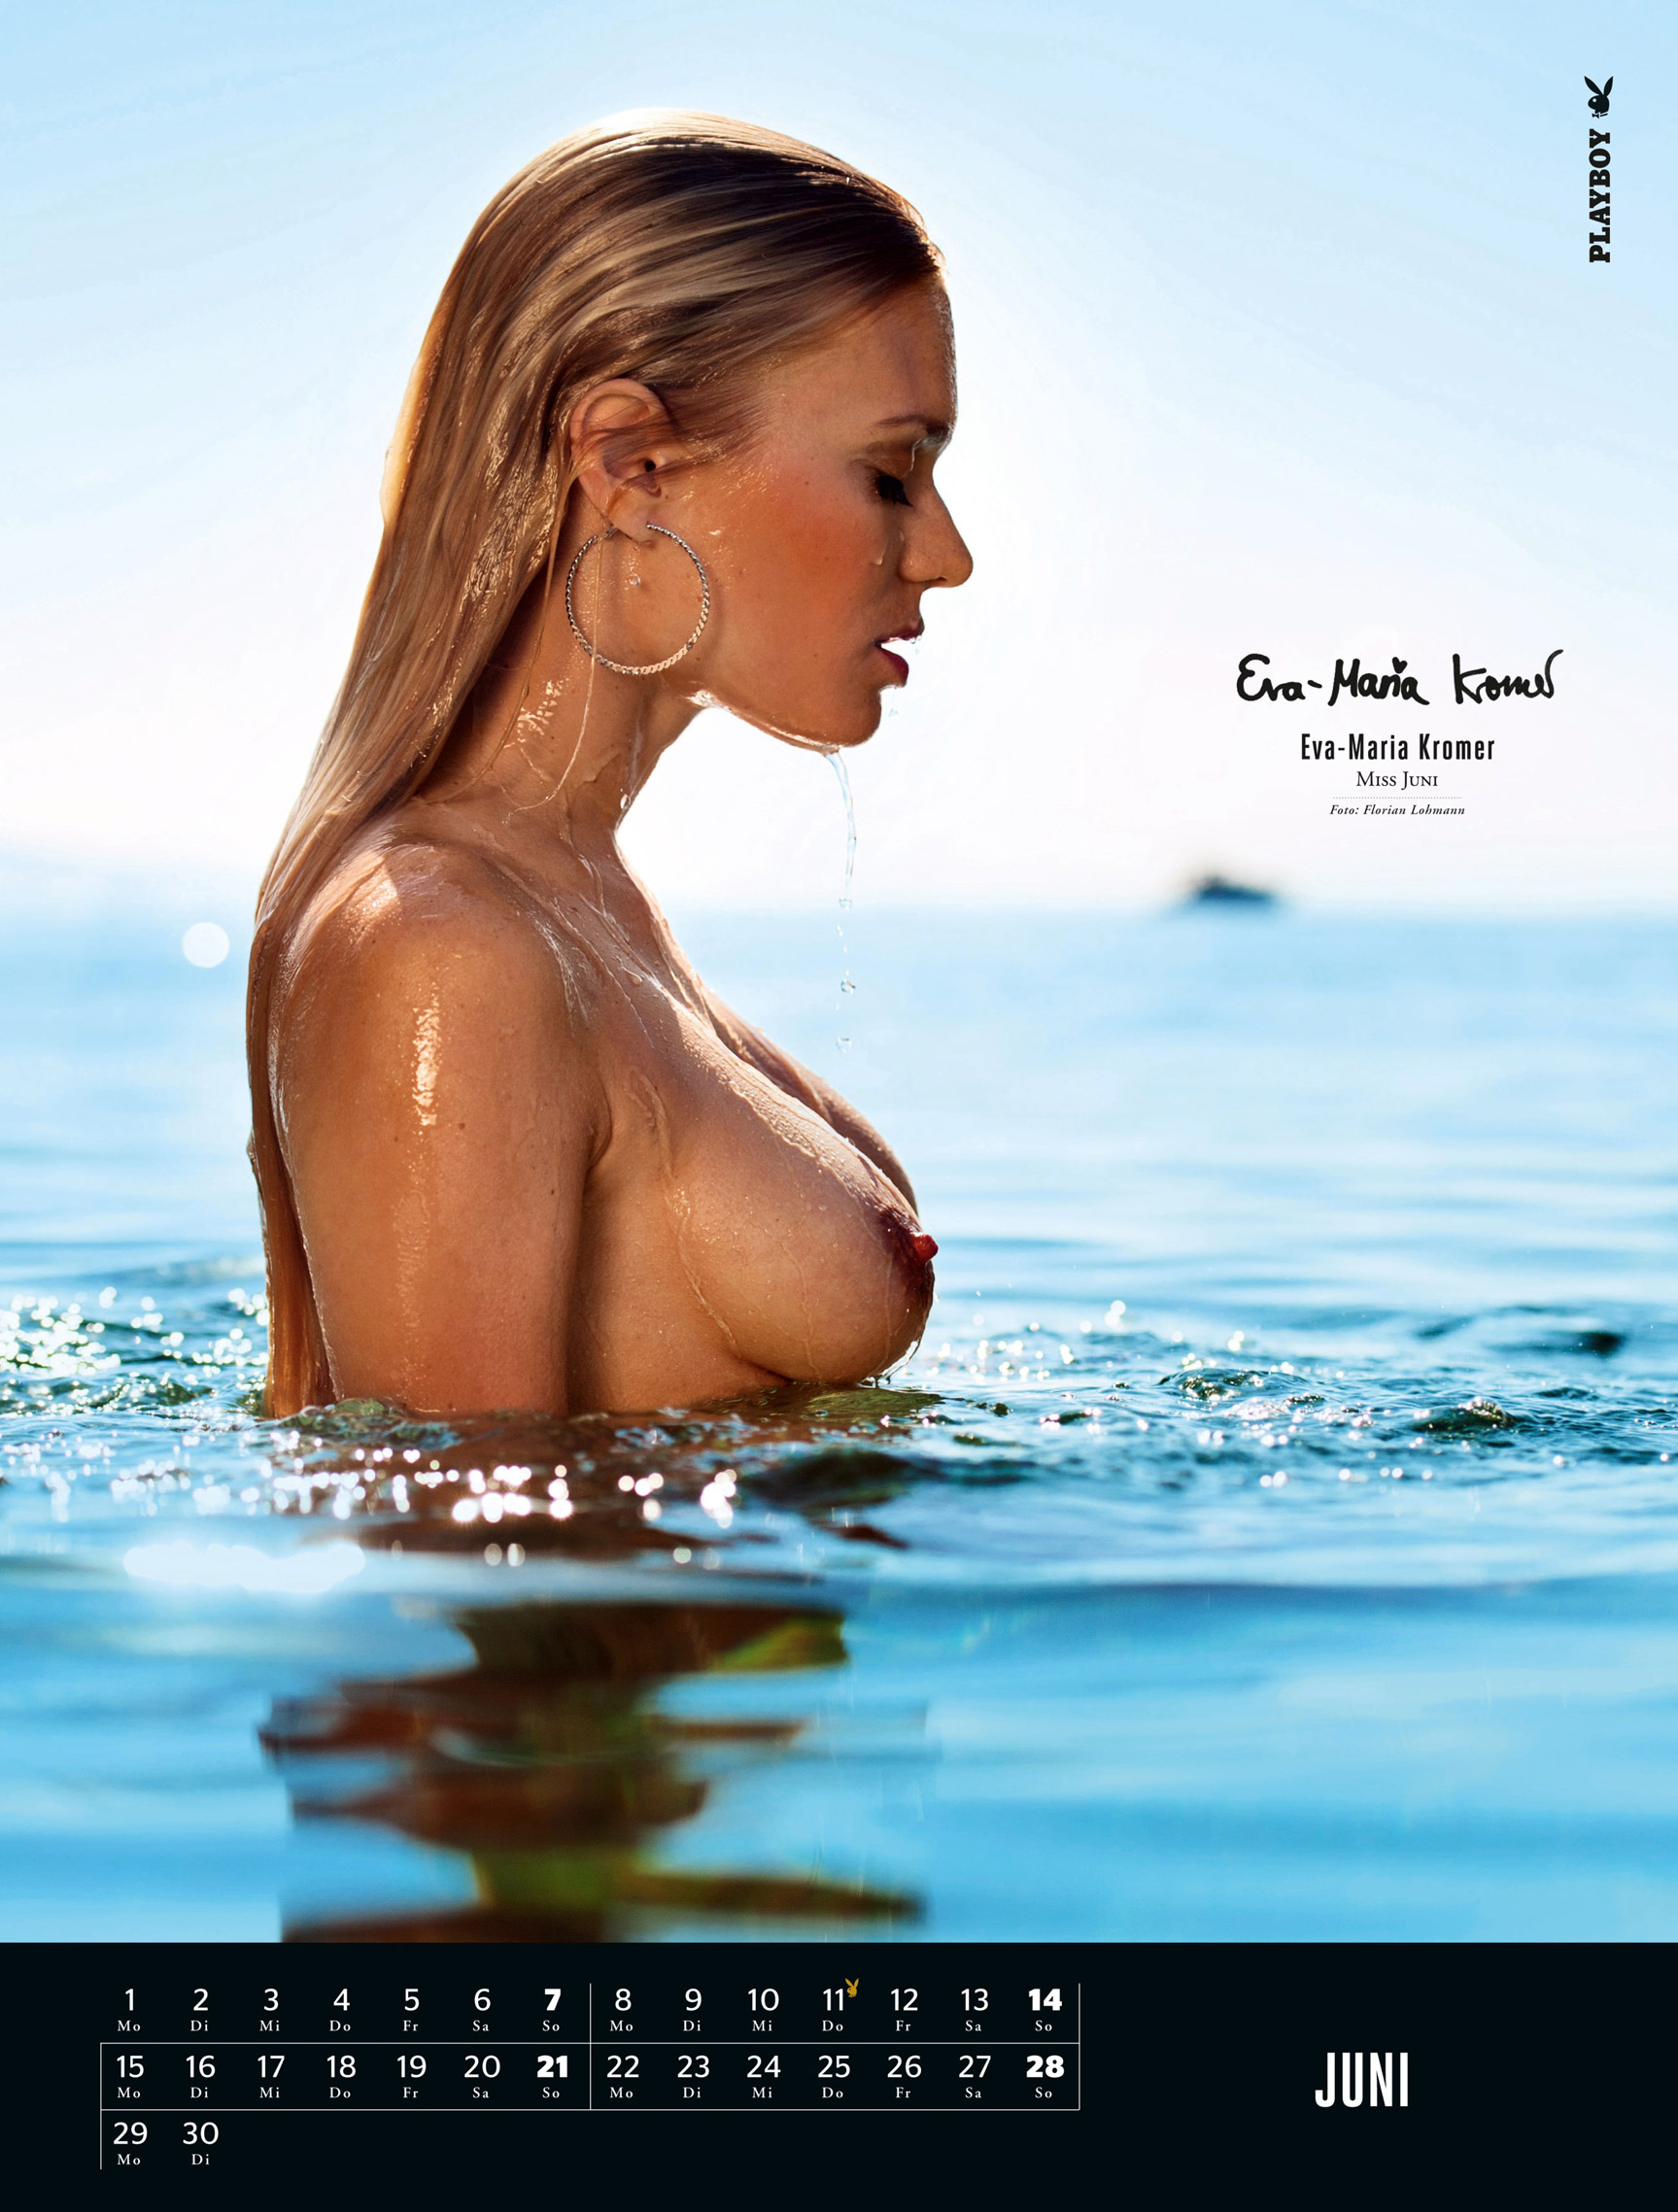 эротический календарь Playboy Germany Playmate Calendar 2015 - Miss June 2014 Eva-Maria Kromer